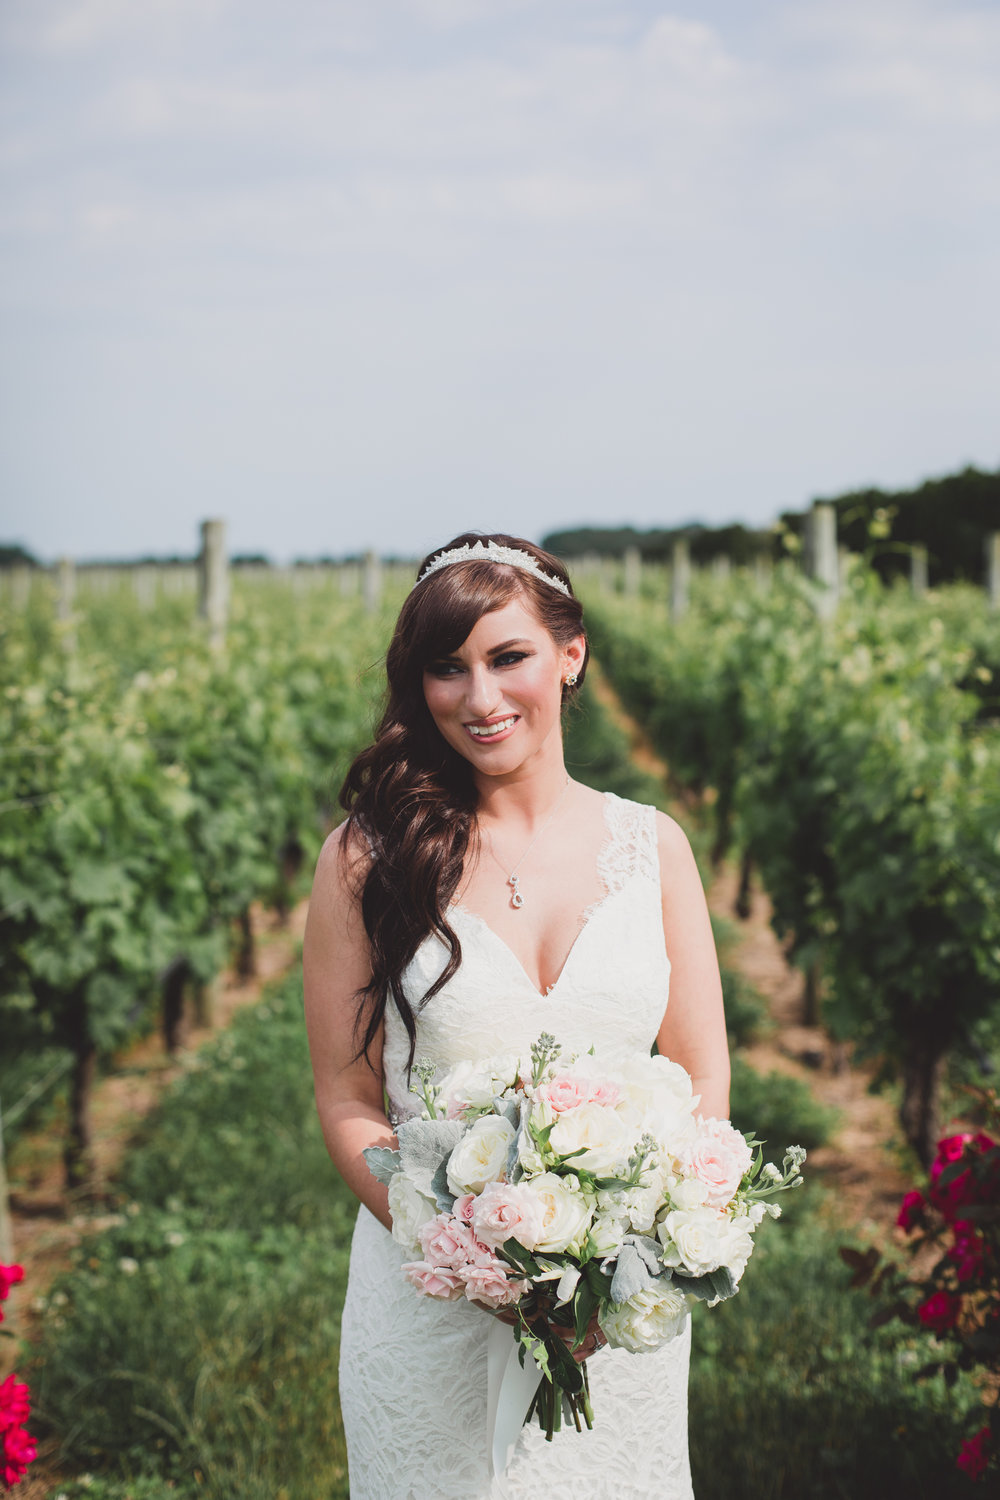 Martha-Clara-Vineyard-Long-Island-Documentary-Wedding-Photographer-22.jpg